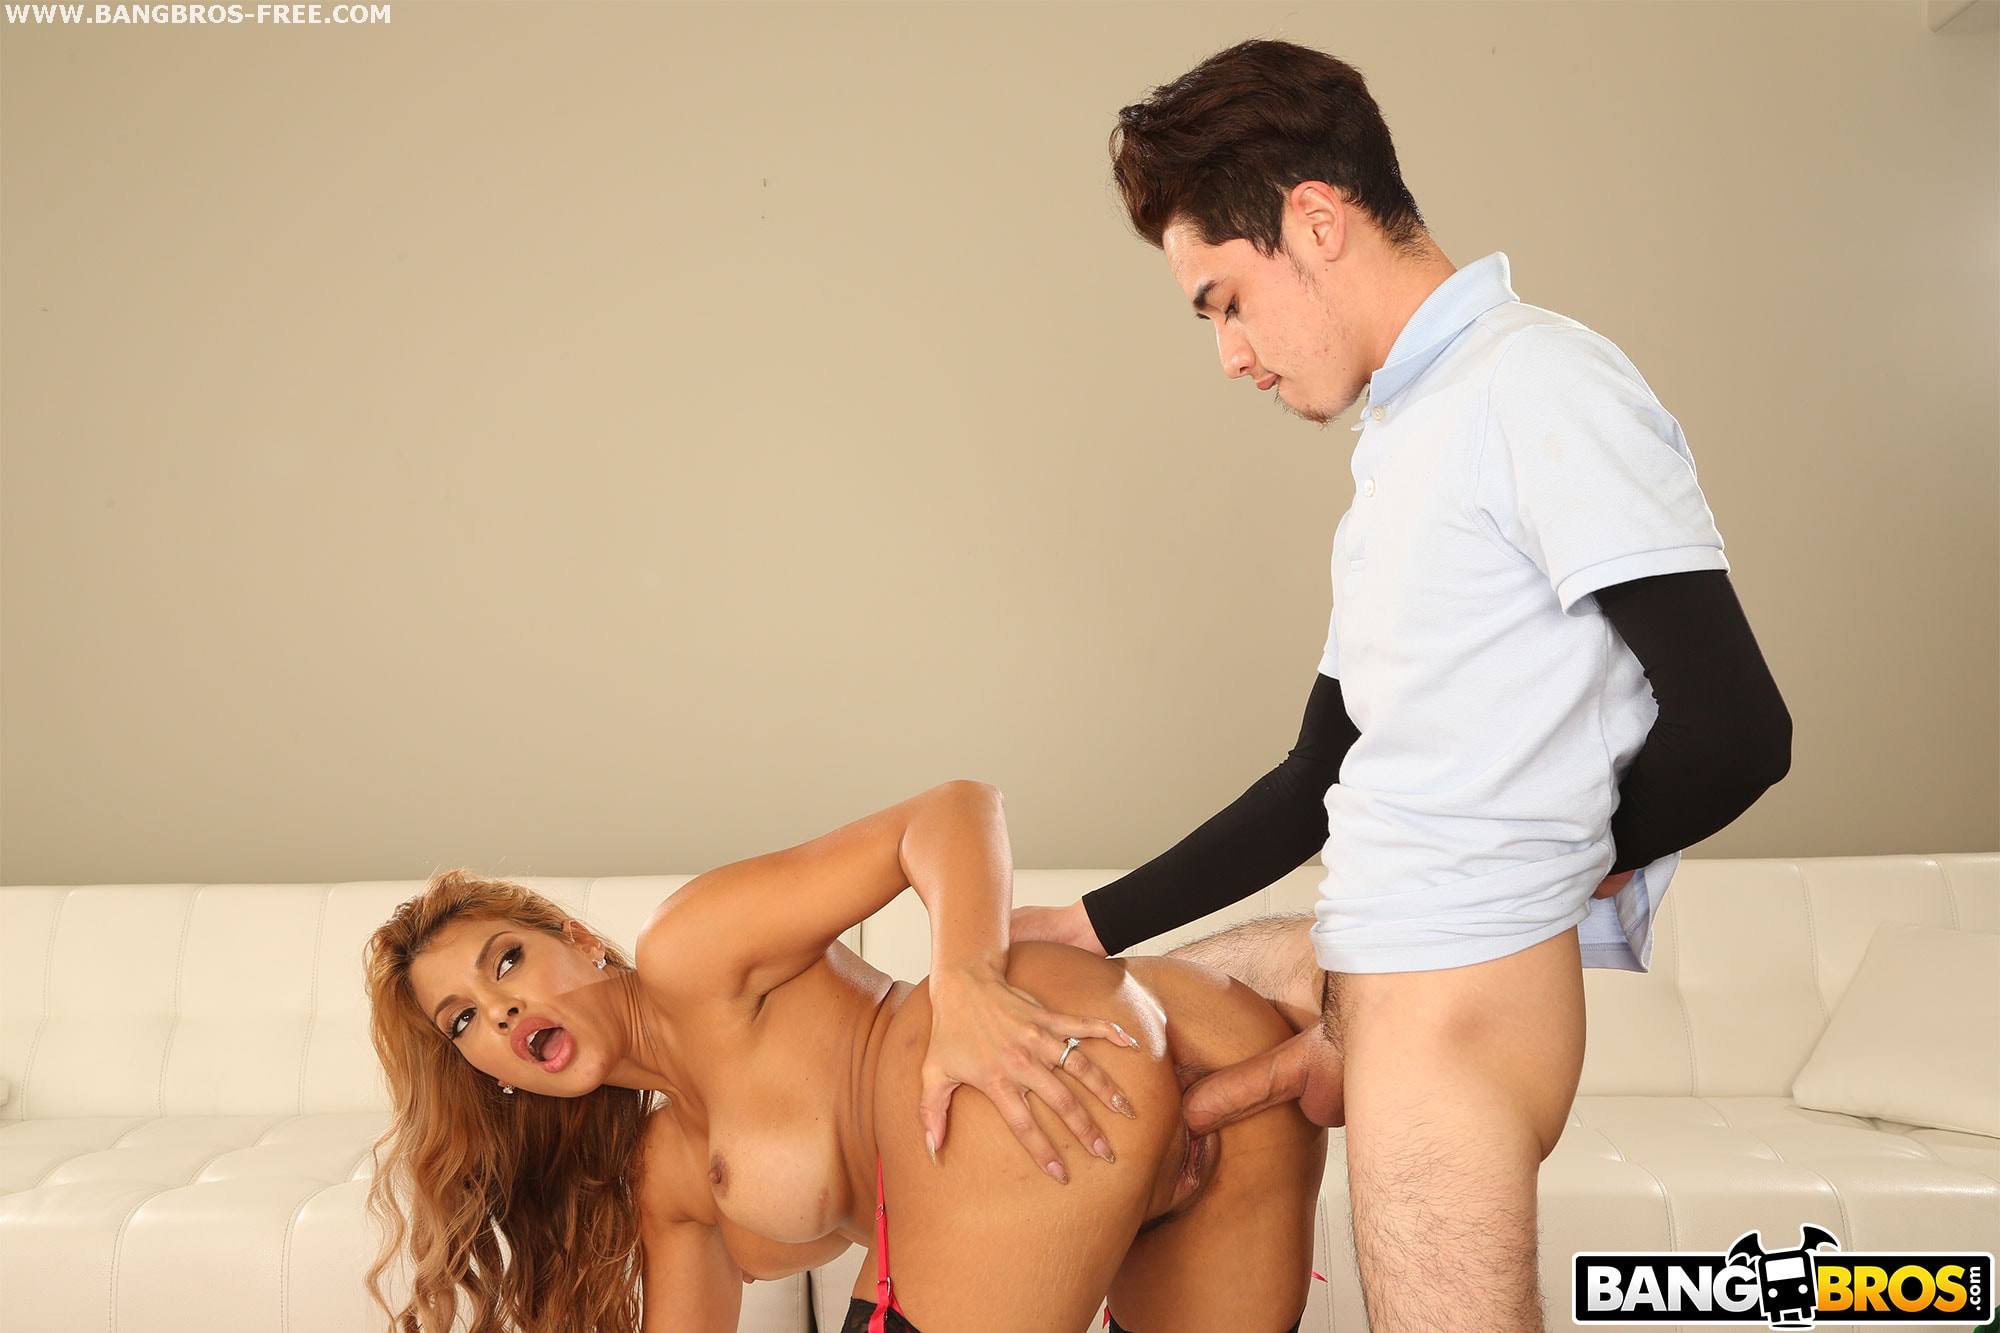 Bangbros 'Hot Milf Fucked Delivery Guy' starring Mercedes Carrera (photo 459)